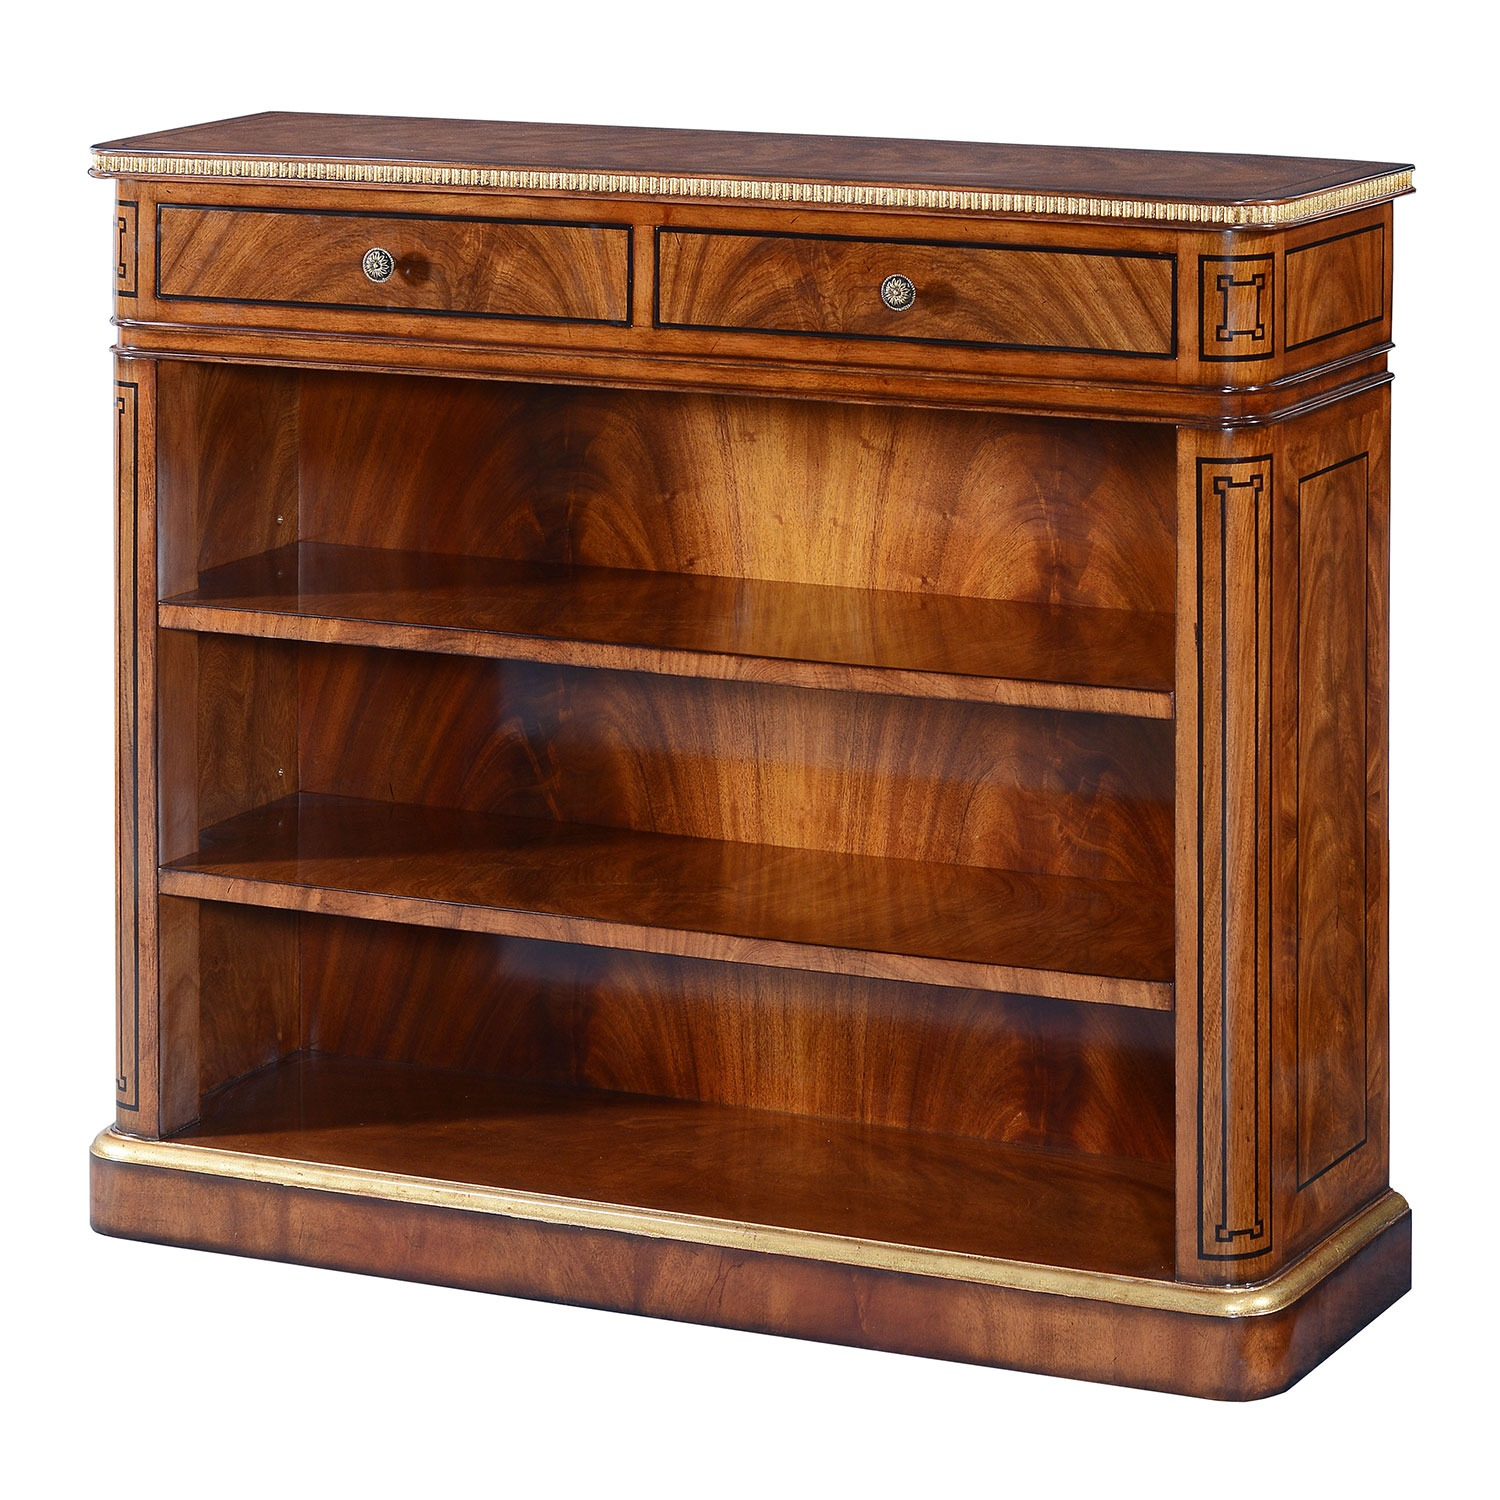 Thomas Hope style mahogany & gilded open bookcase - 42in